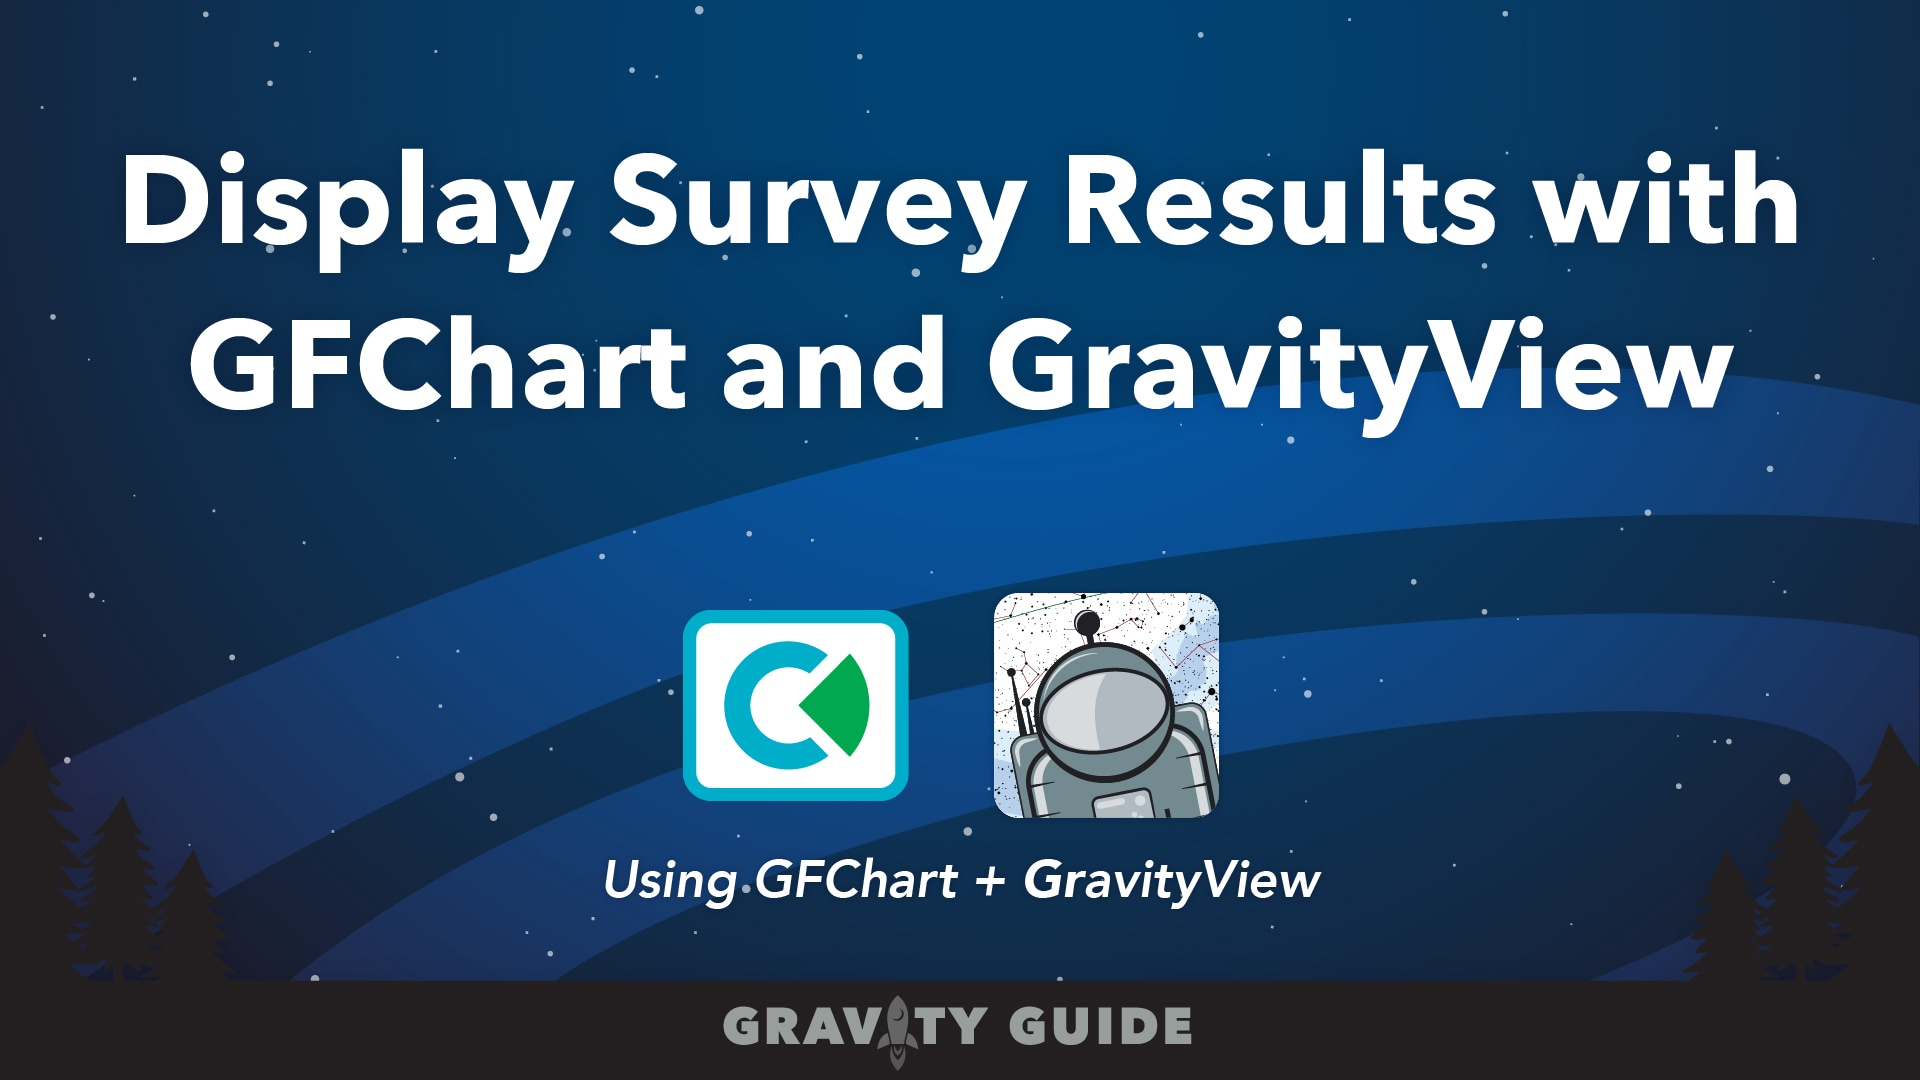 Display Survey Results with GFChart and GravityView